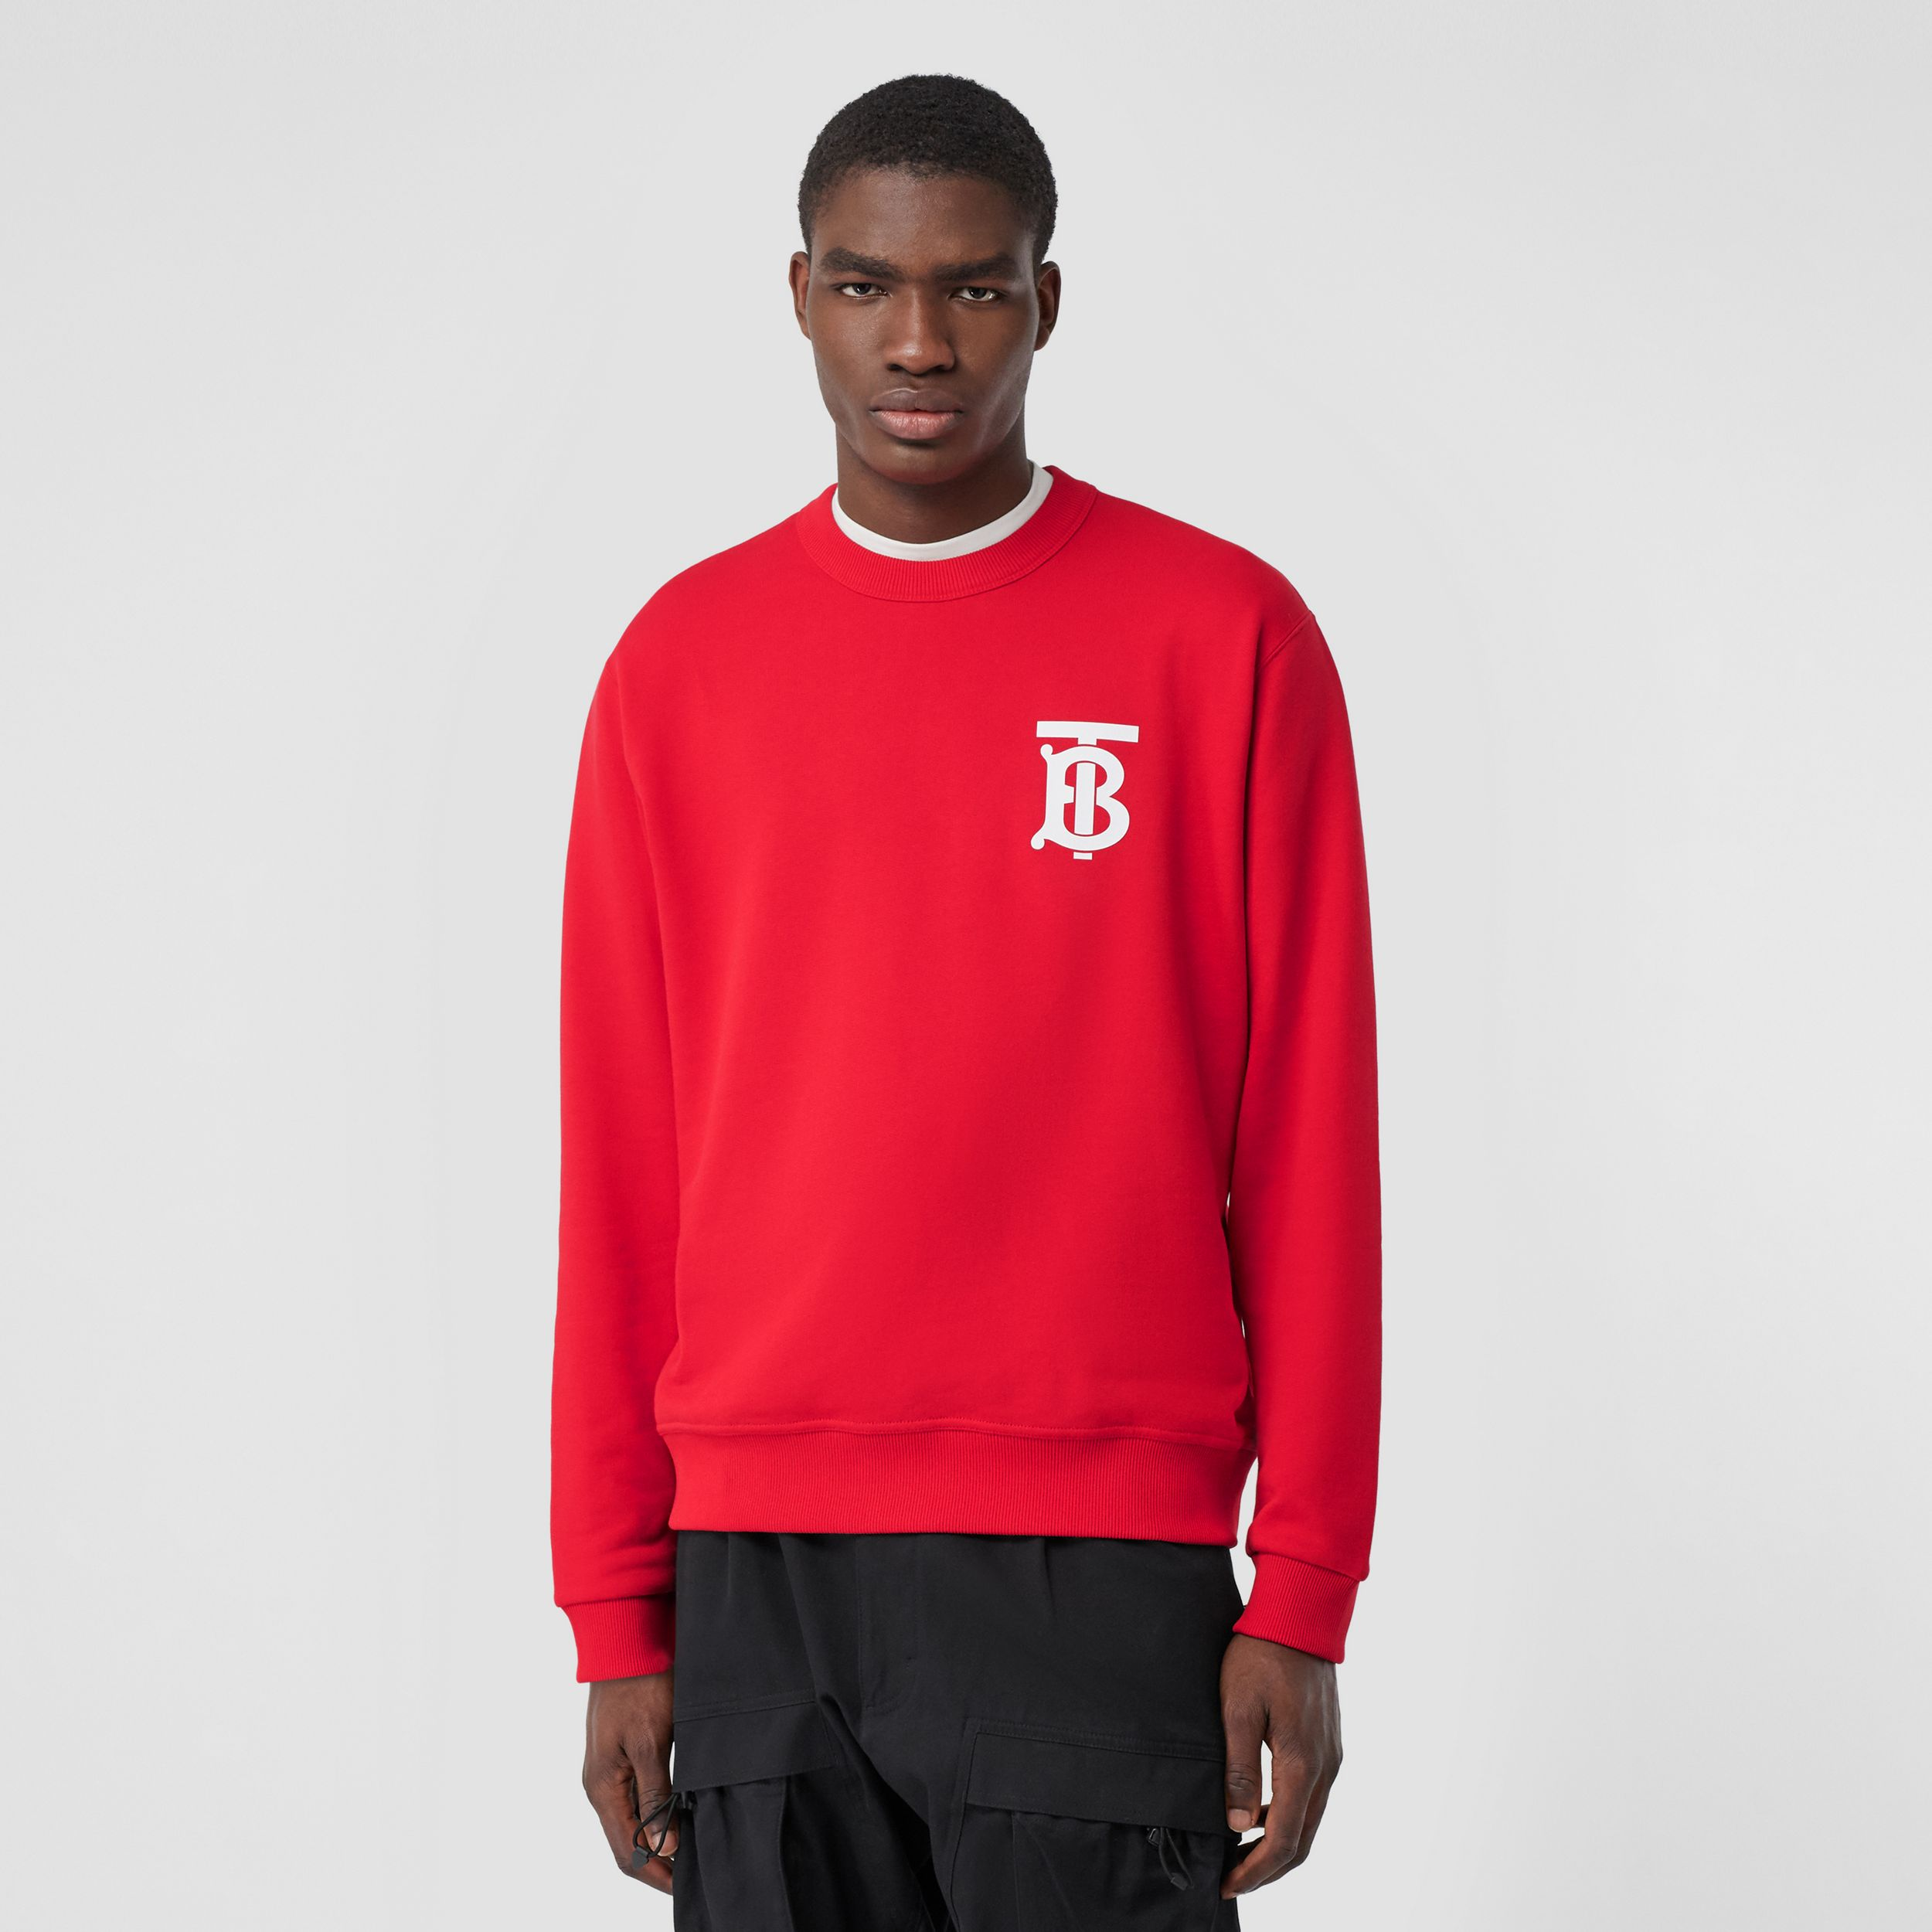 Monogram Motif Cotton Sweatshirt in Bright Red - Men | Burberry - 1